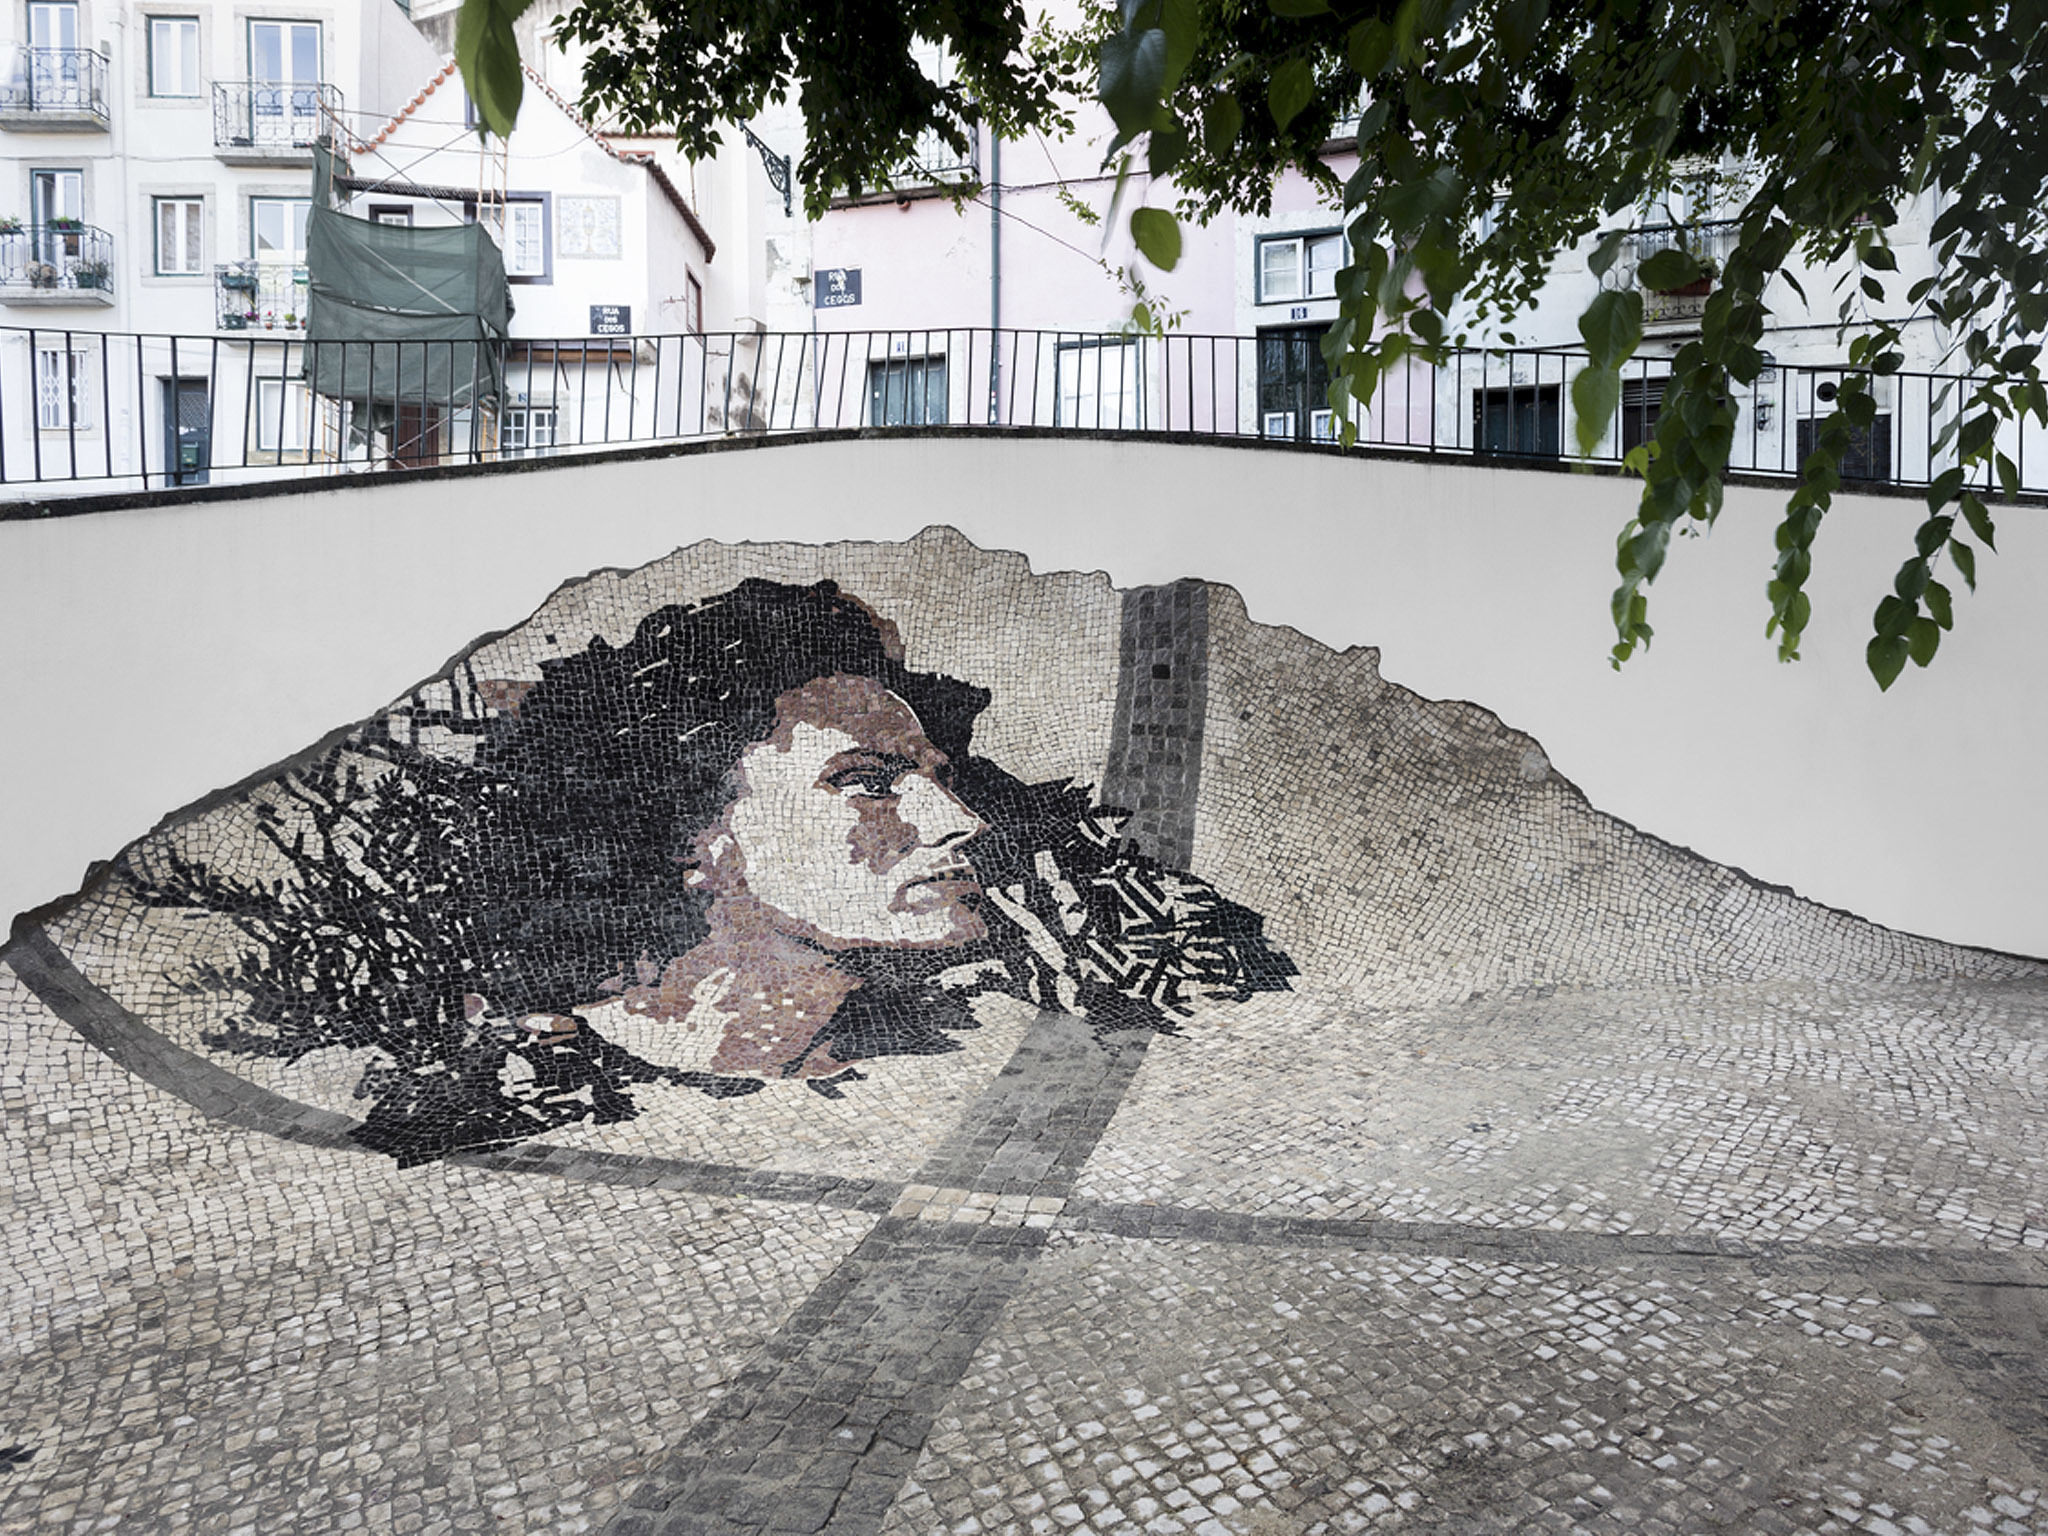 The best places in Lisbon to see street art